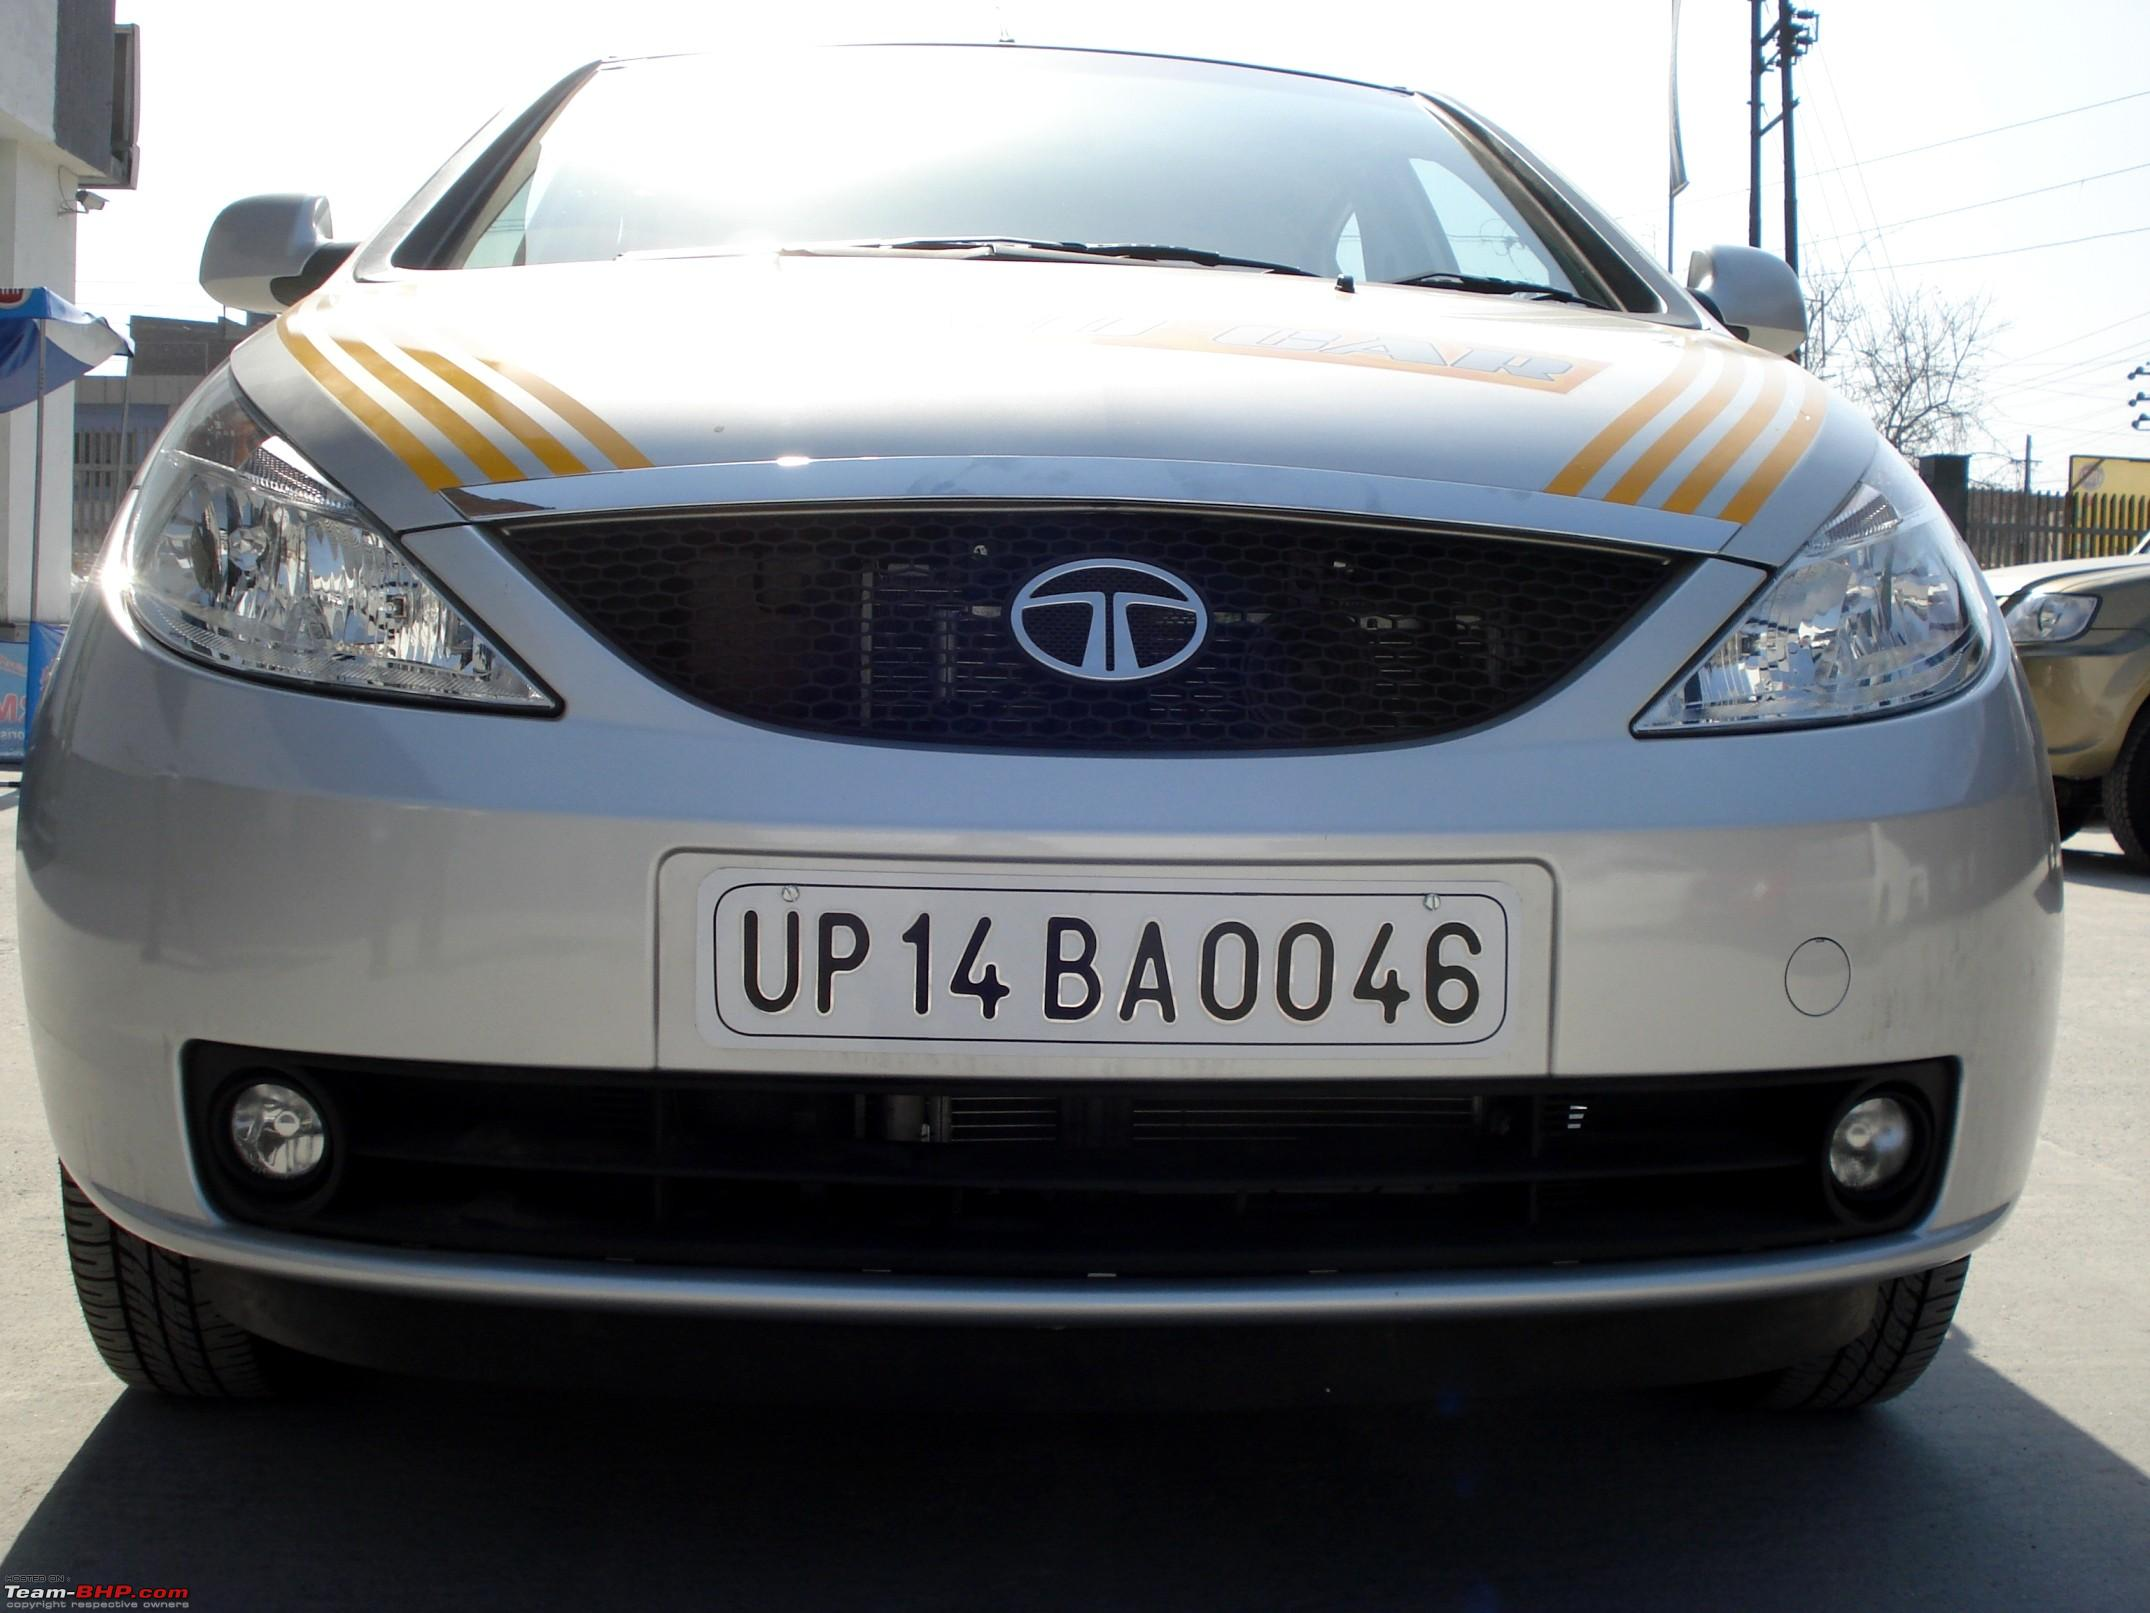 Tata Indica Vista ABS: Test Drive and review - Team-